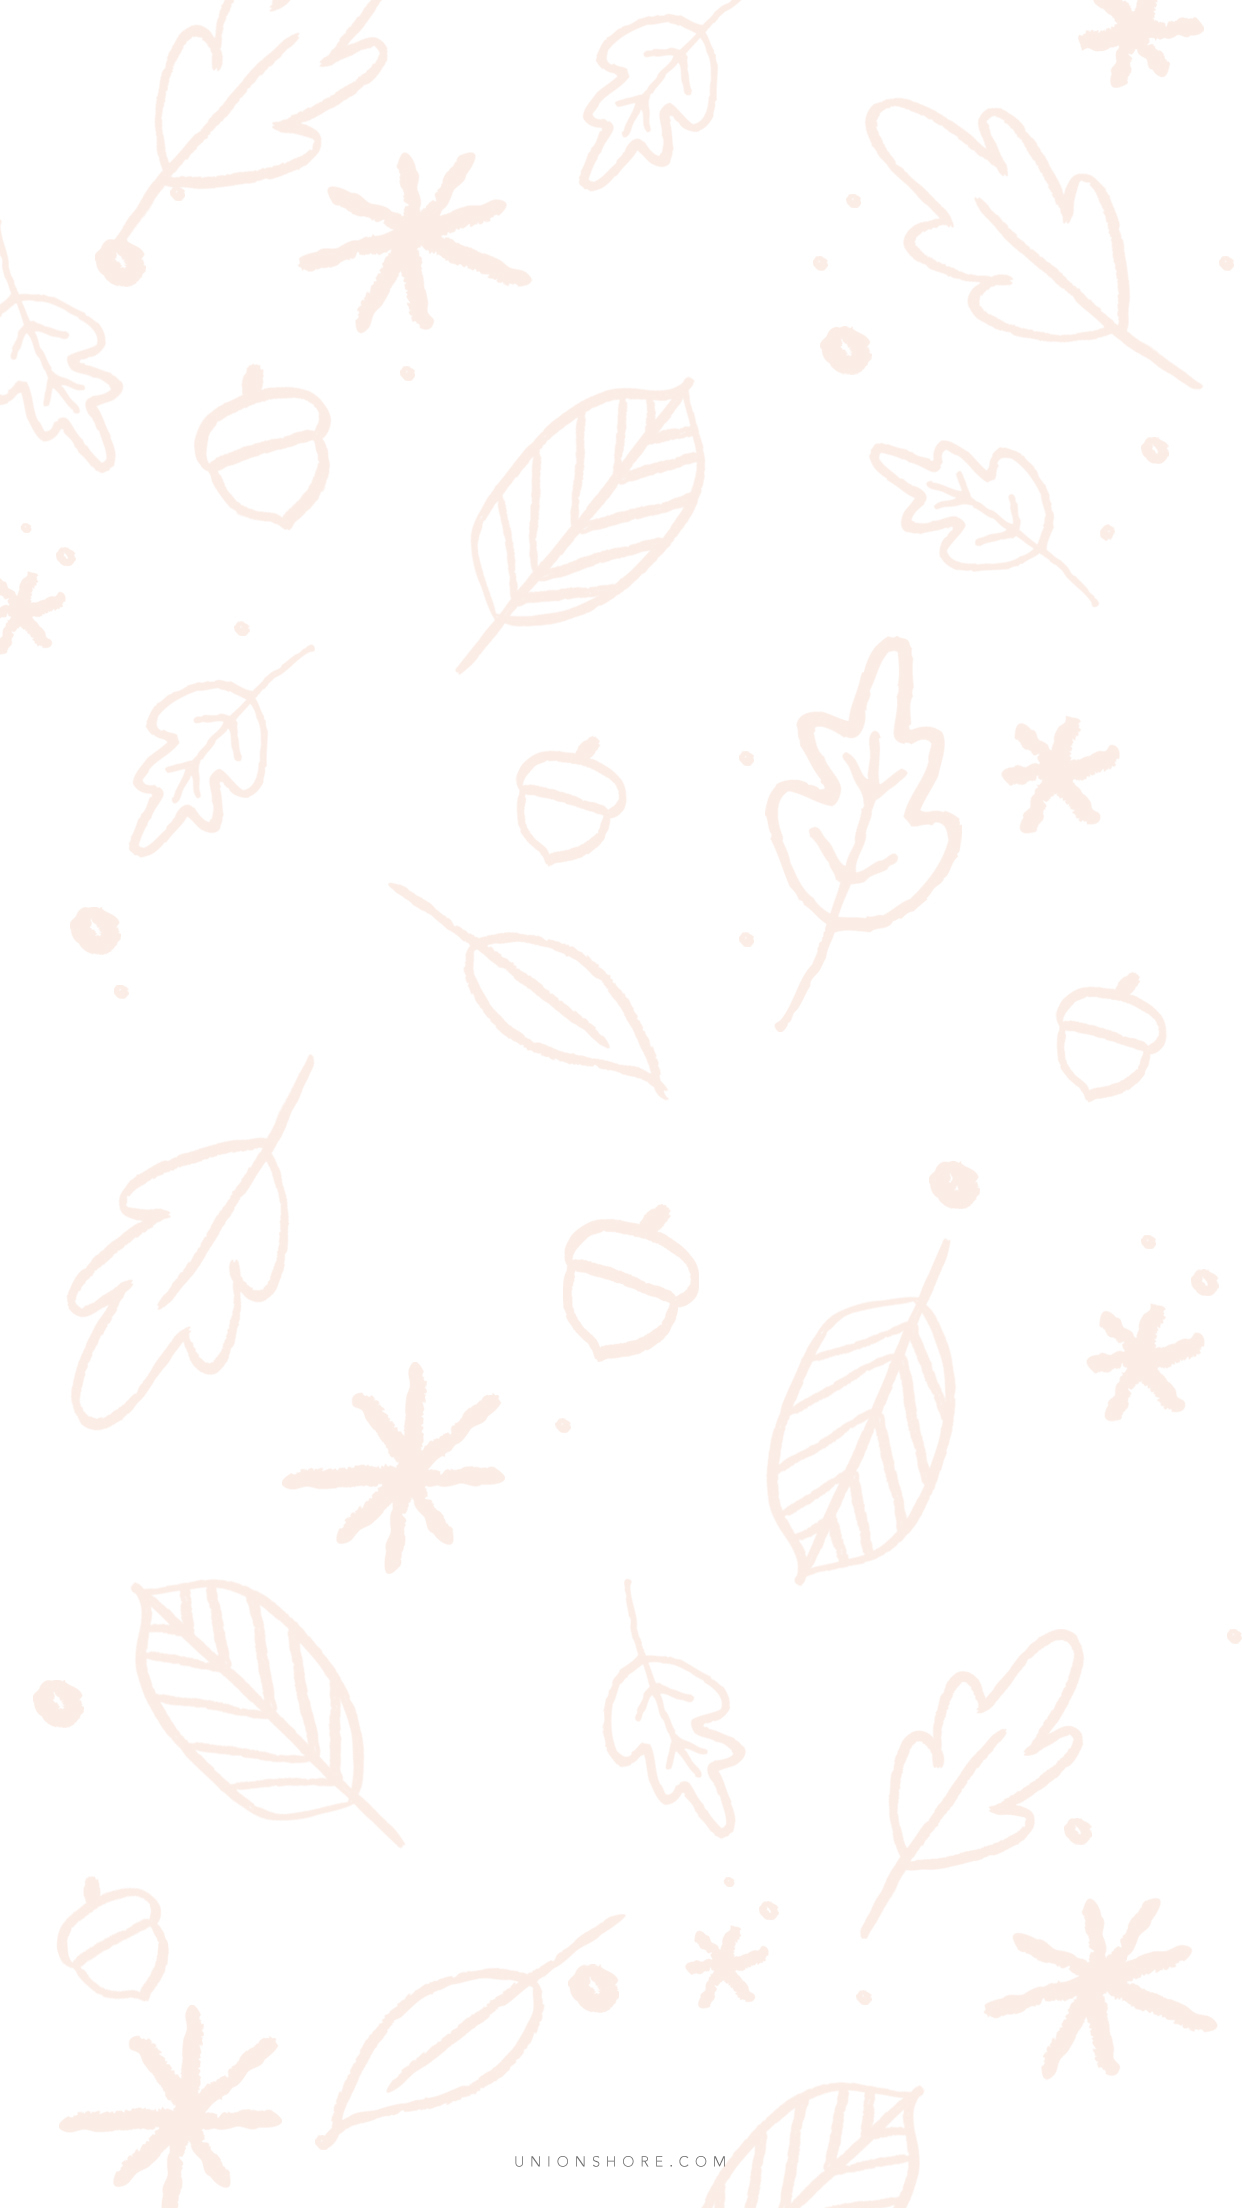 Leaves Phone pattern white